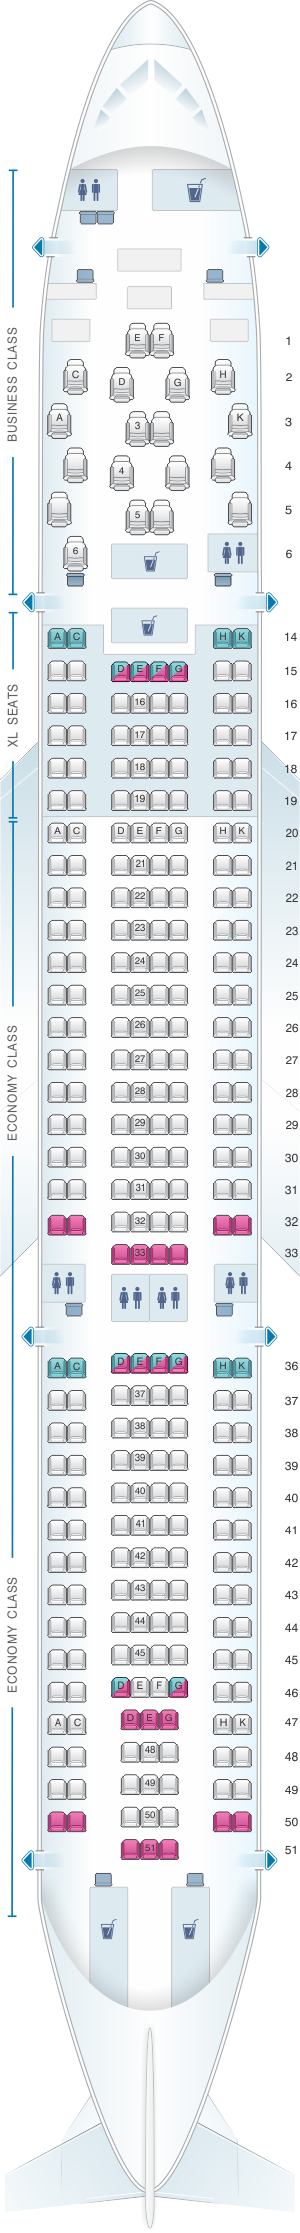 Seat map for airberlin Airbus A330 200